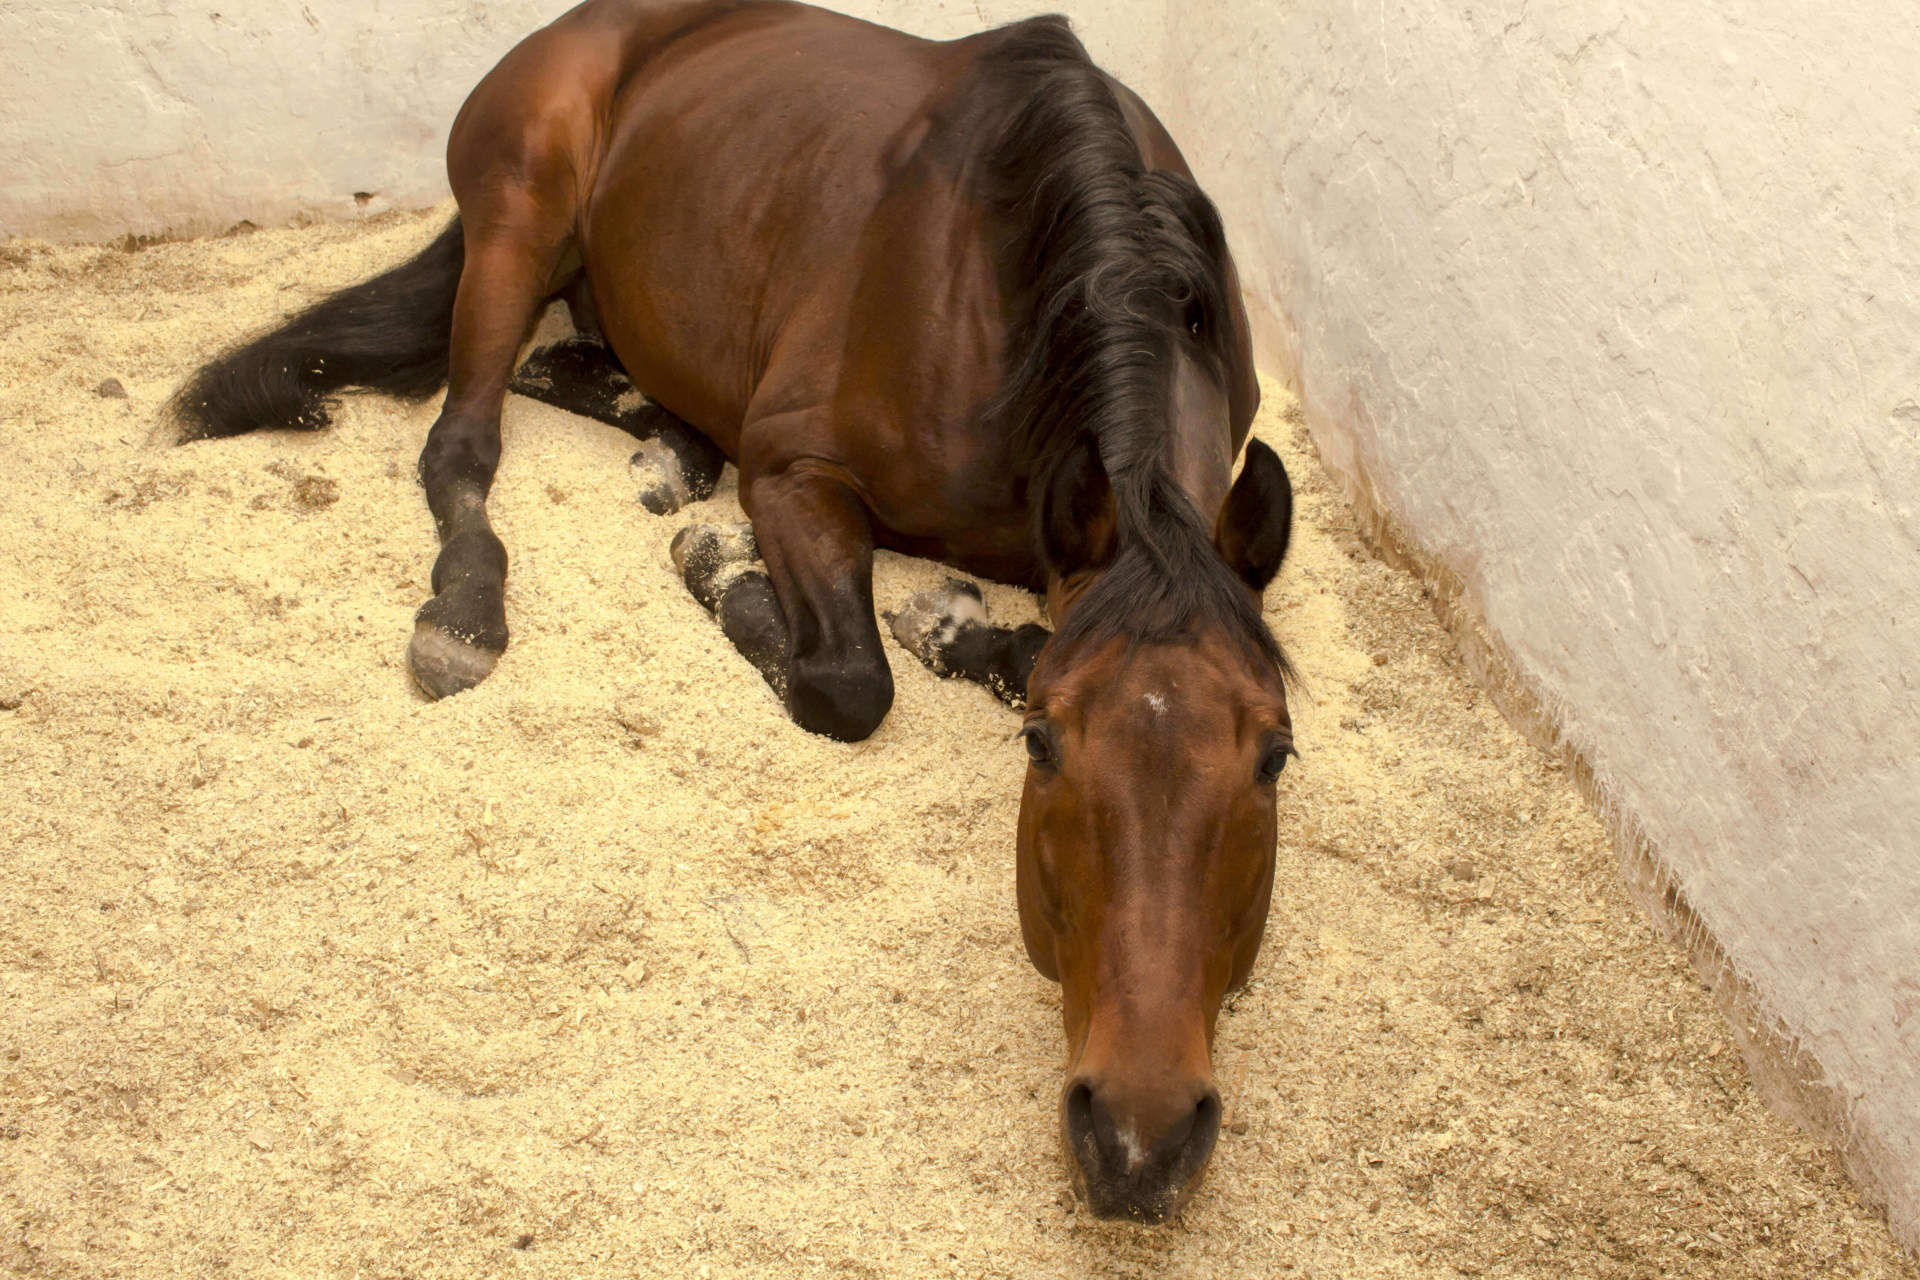 Horse laying down